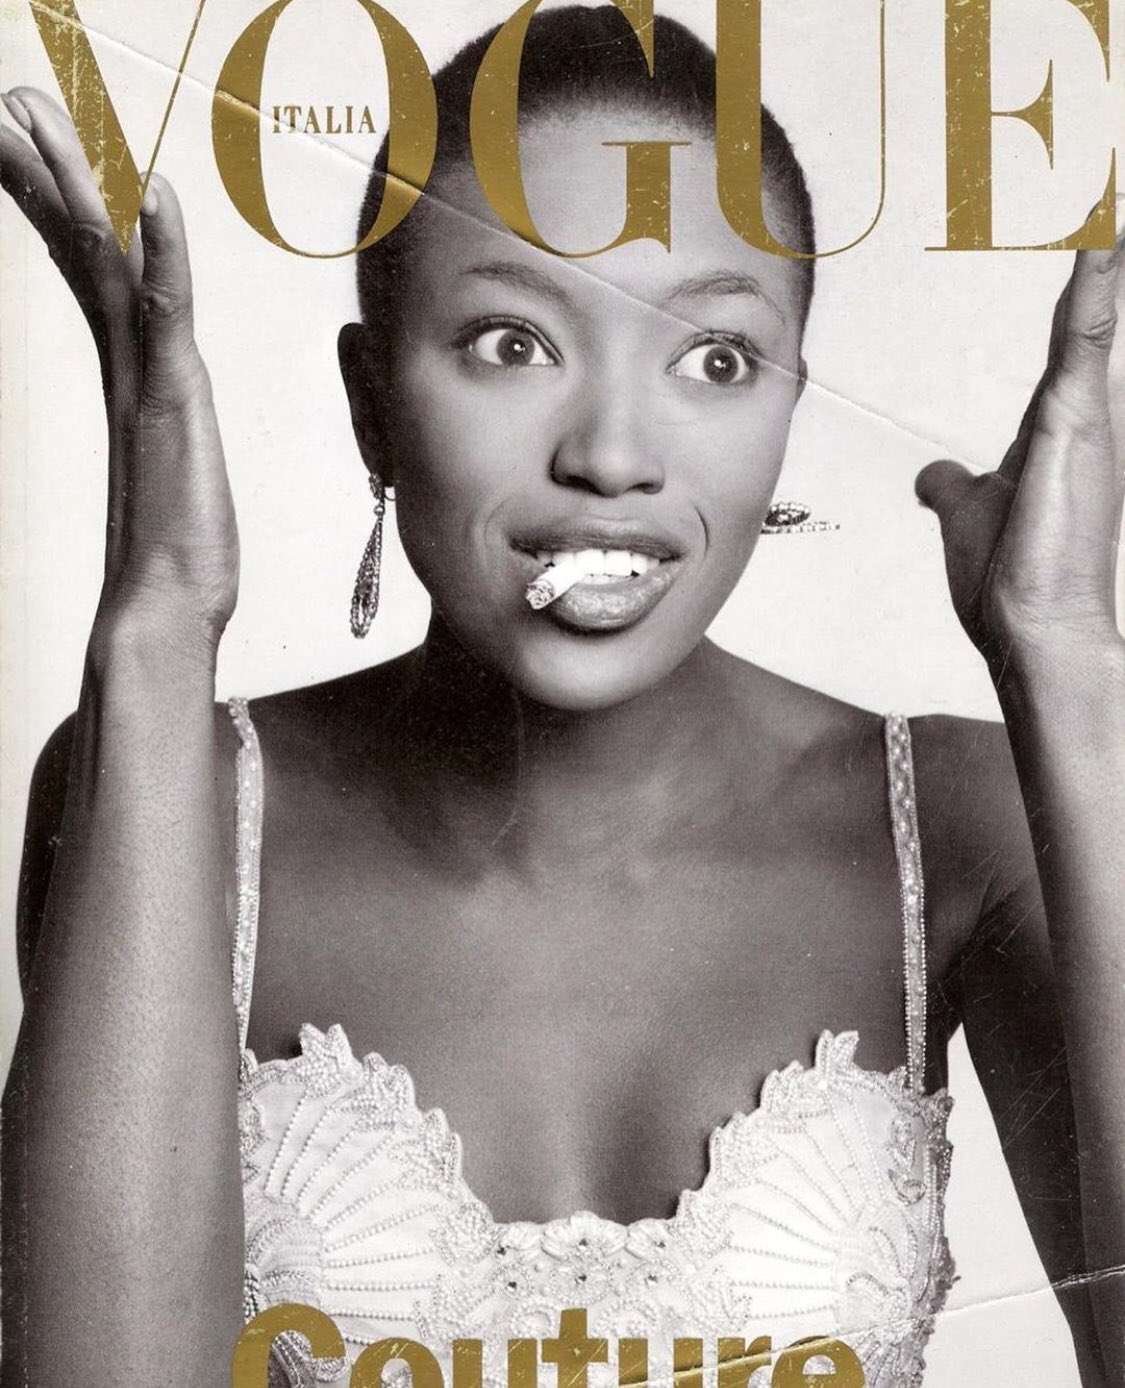 Happy birthday to the one and only, the iconic supermodel naomi campbell